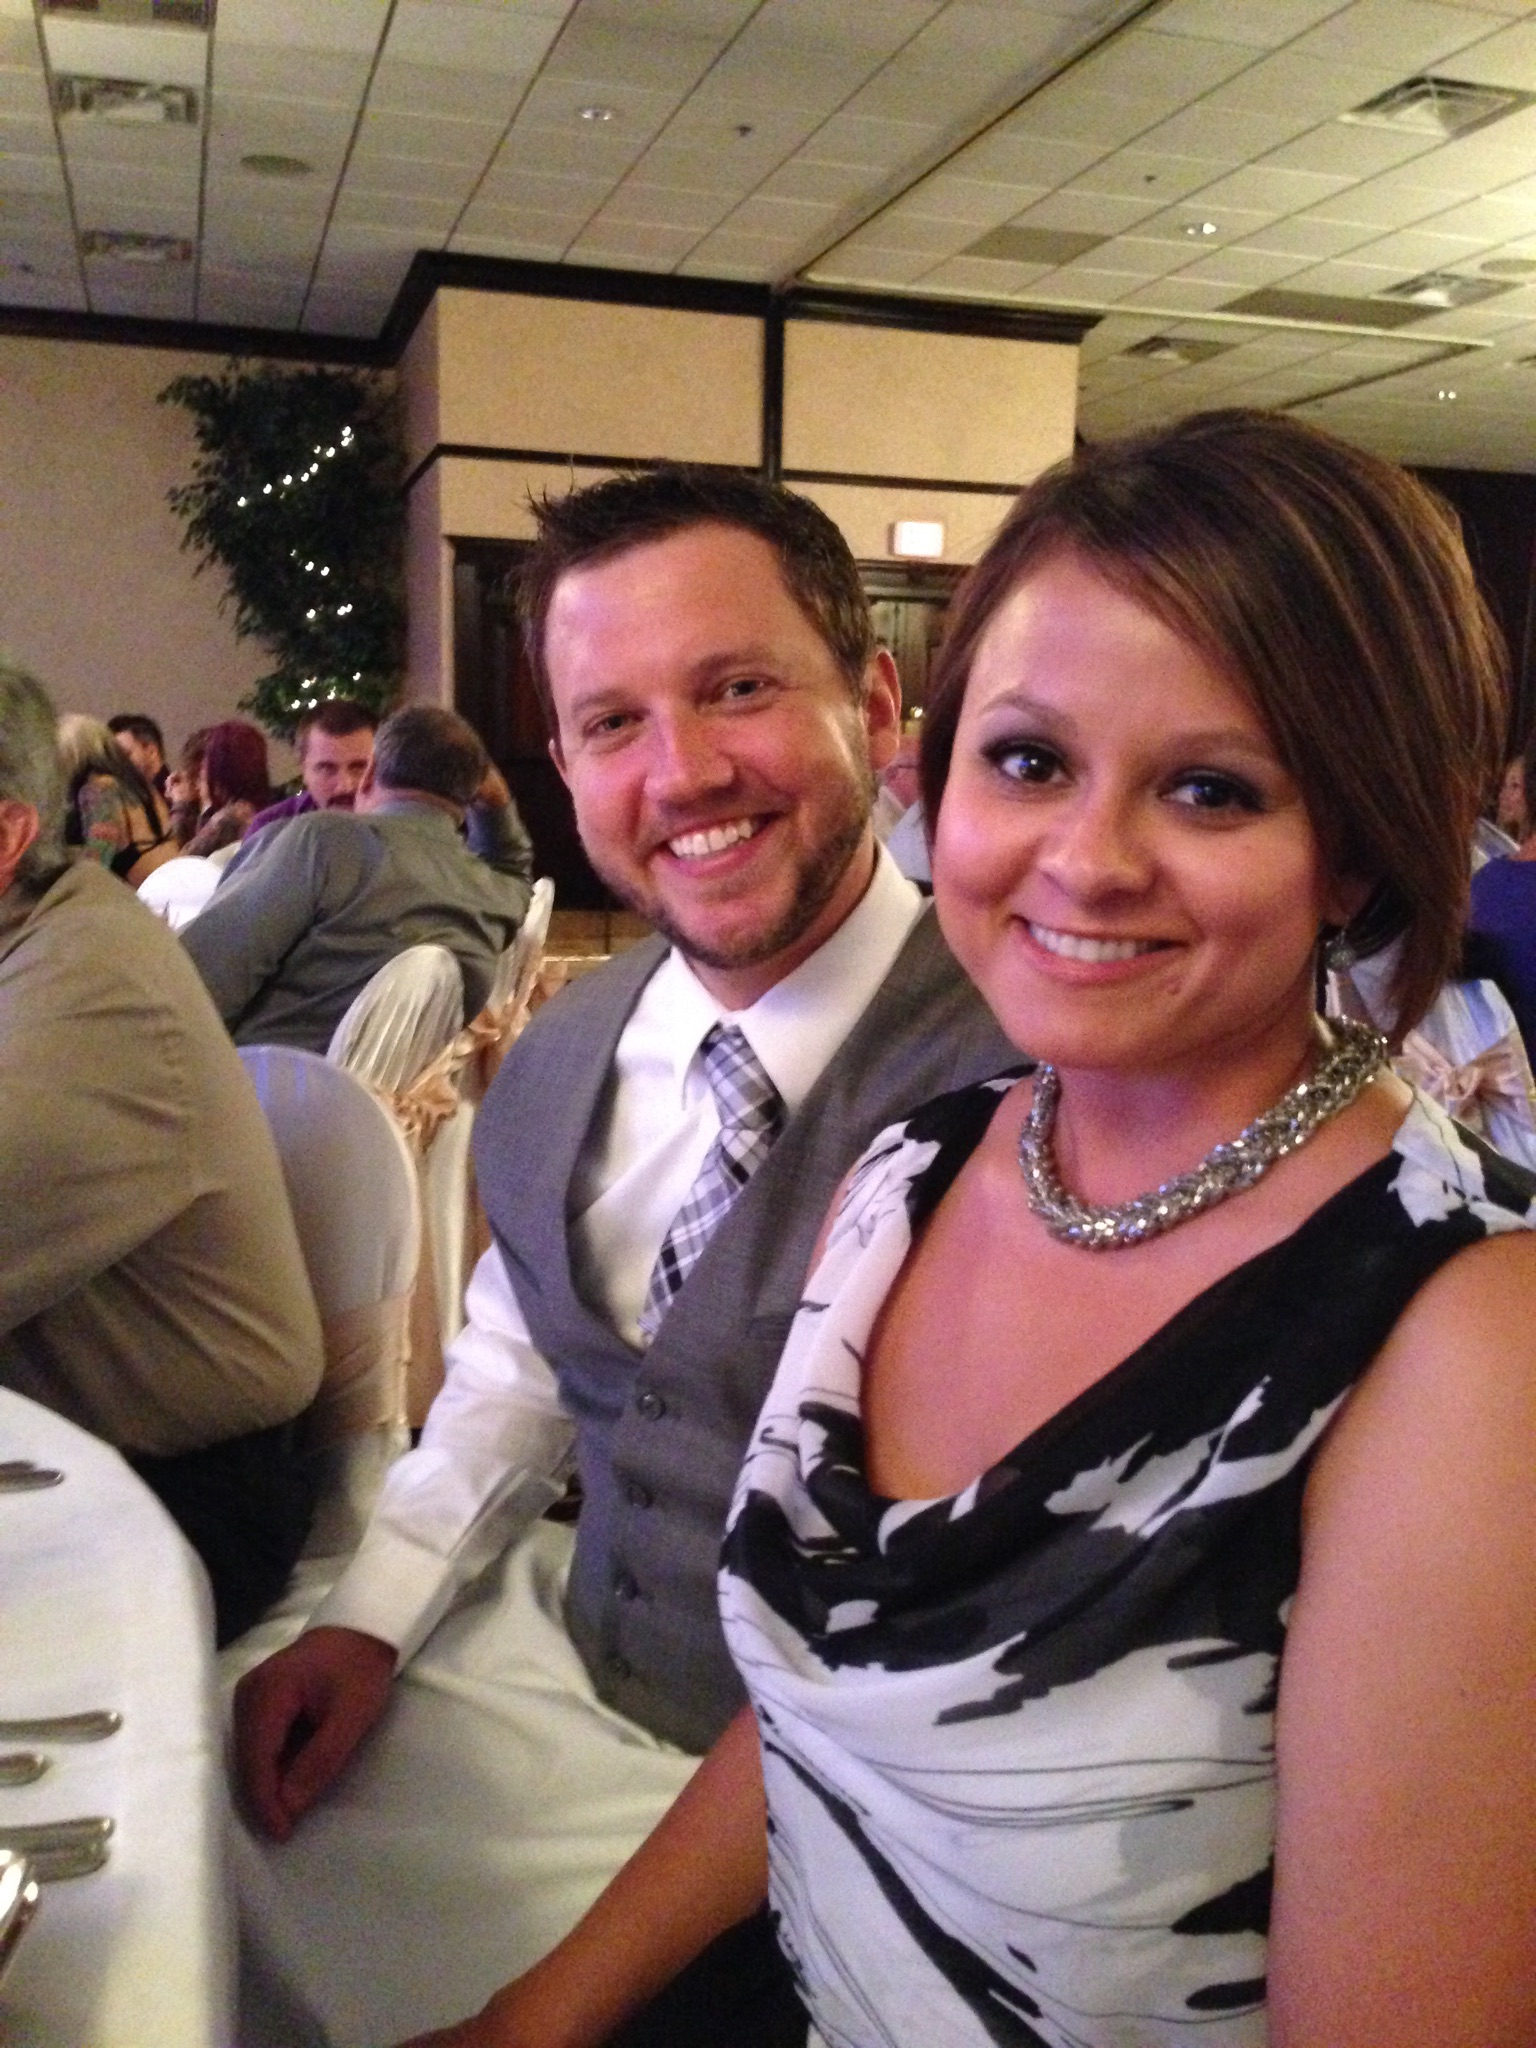 Brent and fiance Kimberly